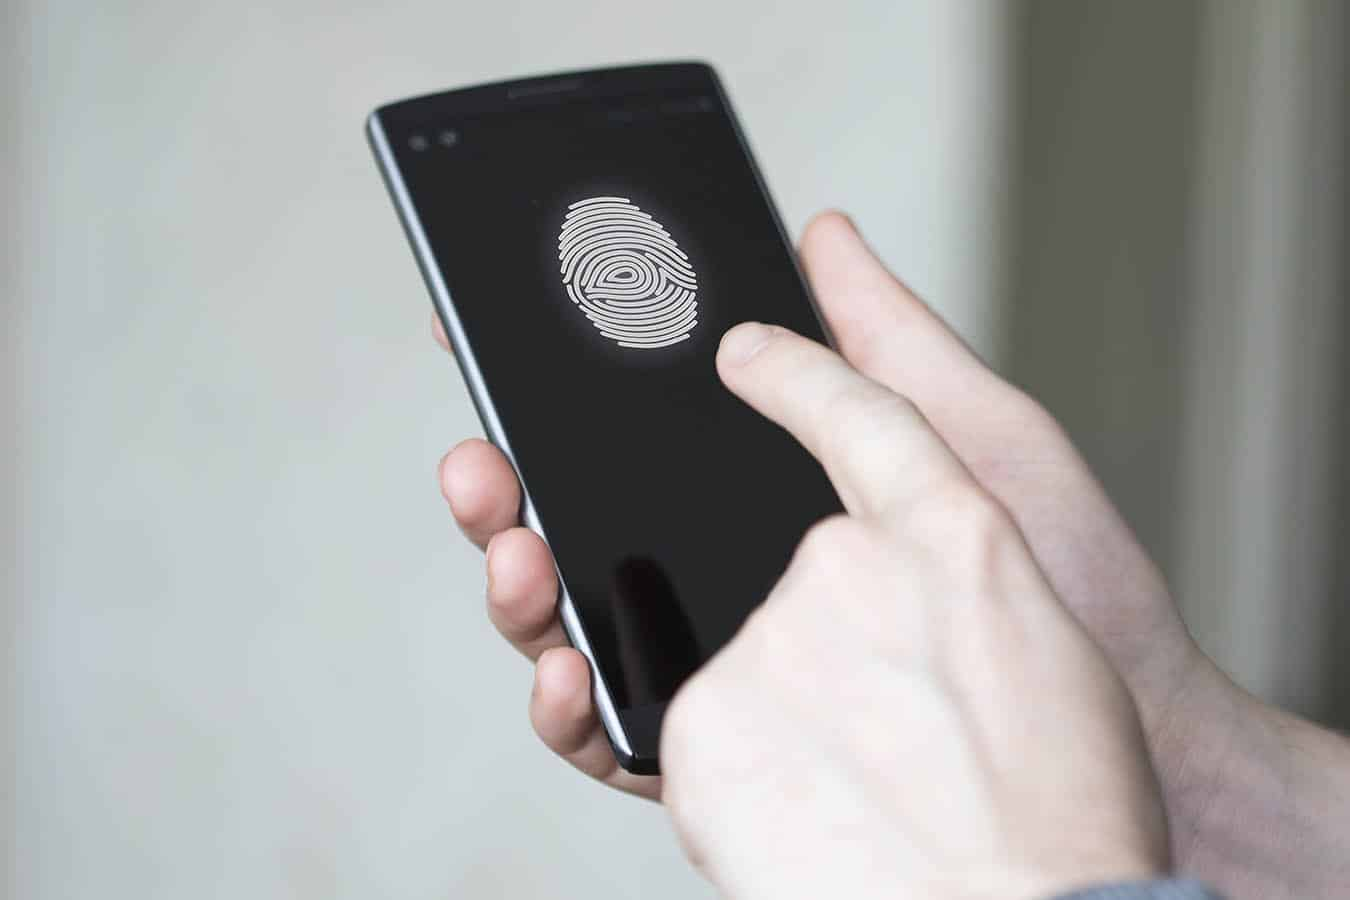 Biometrics: the Future of Mobile Payments?